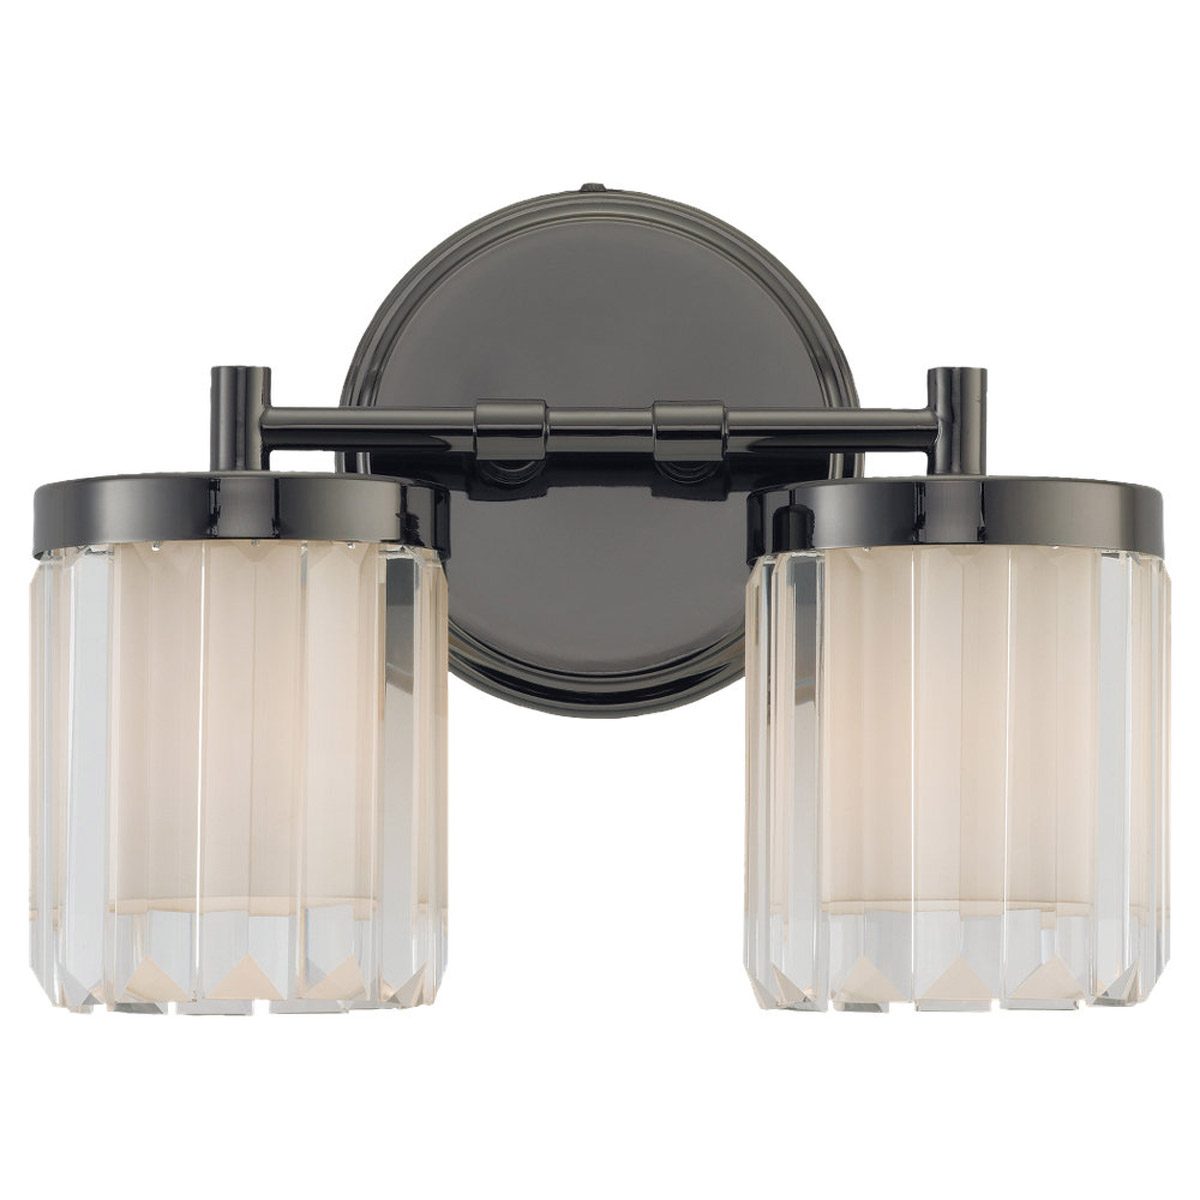 Sea Gull Lighting Nuit Noir Crystal 2 Light Wall / Bath / Vanity in Black Chrome 44691-765 photo